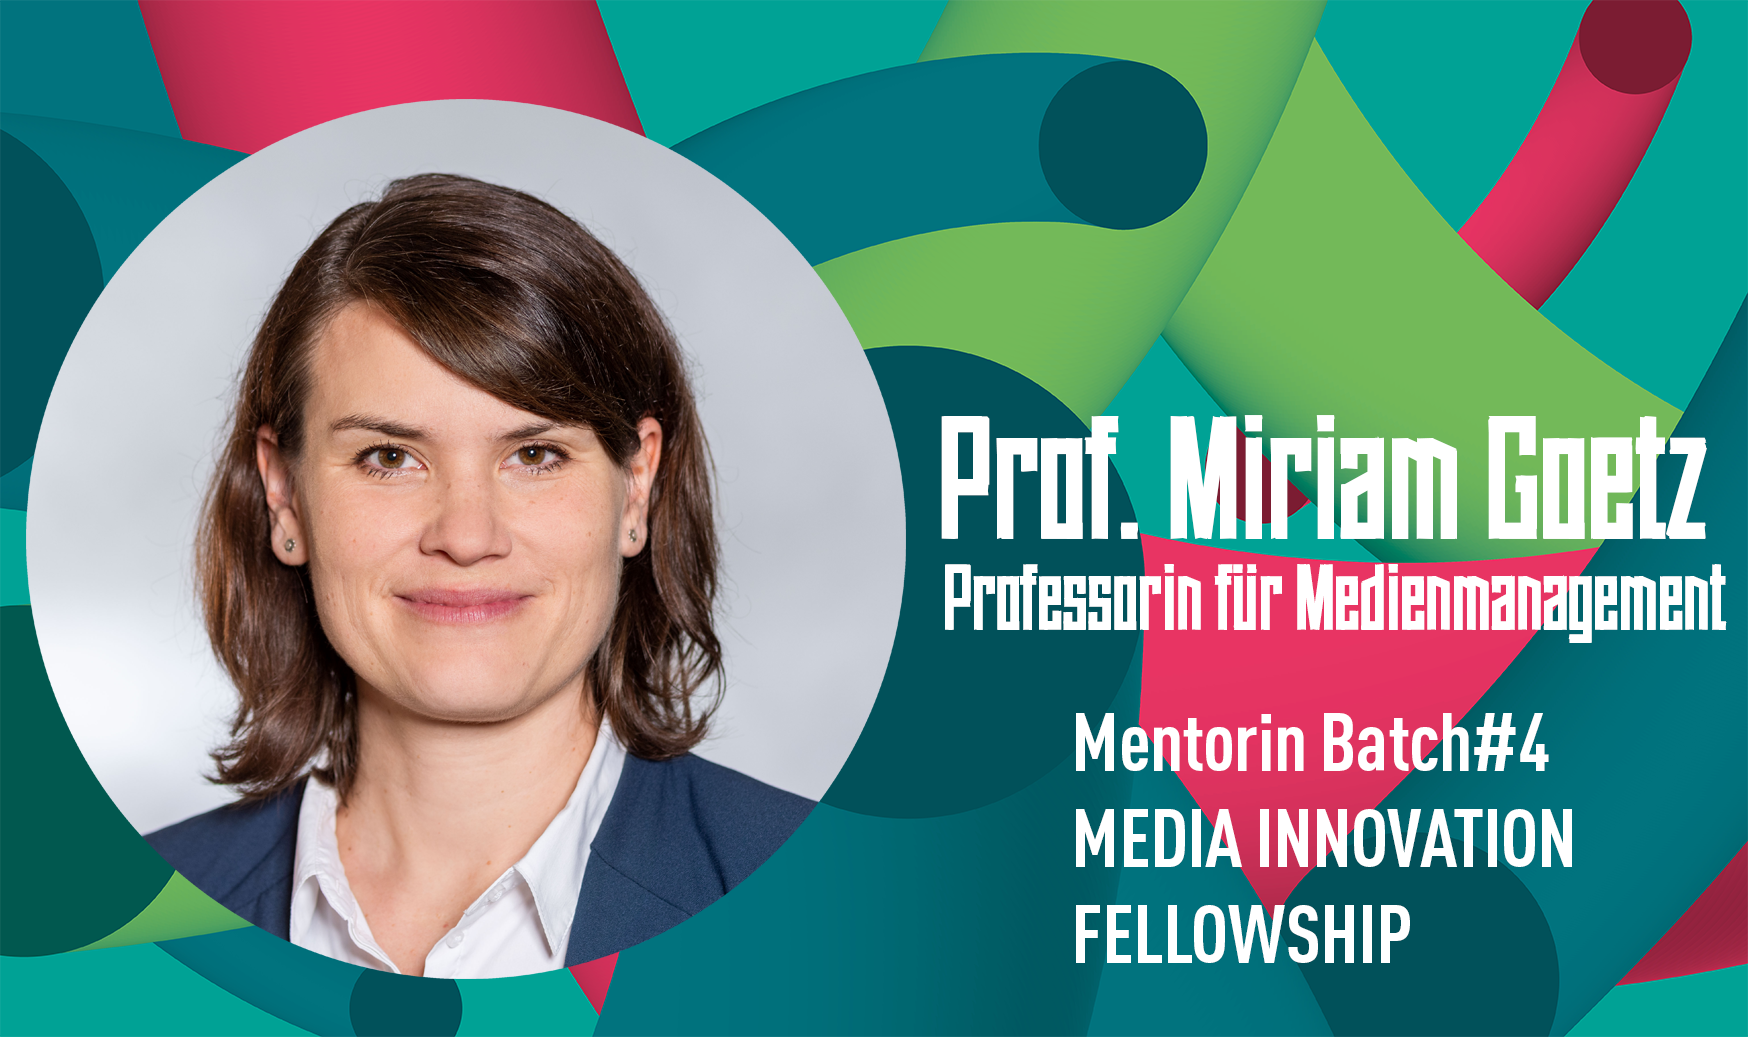 Prof. Dr. Miriam Goetz: Mentorin während des Media Innovation Fellowship Batch #4